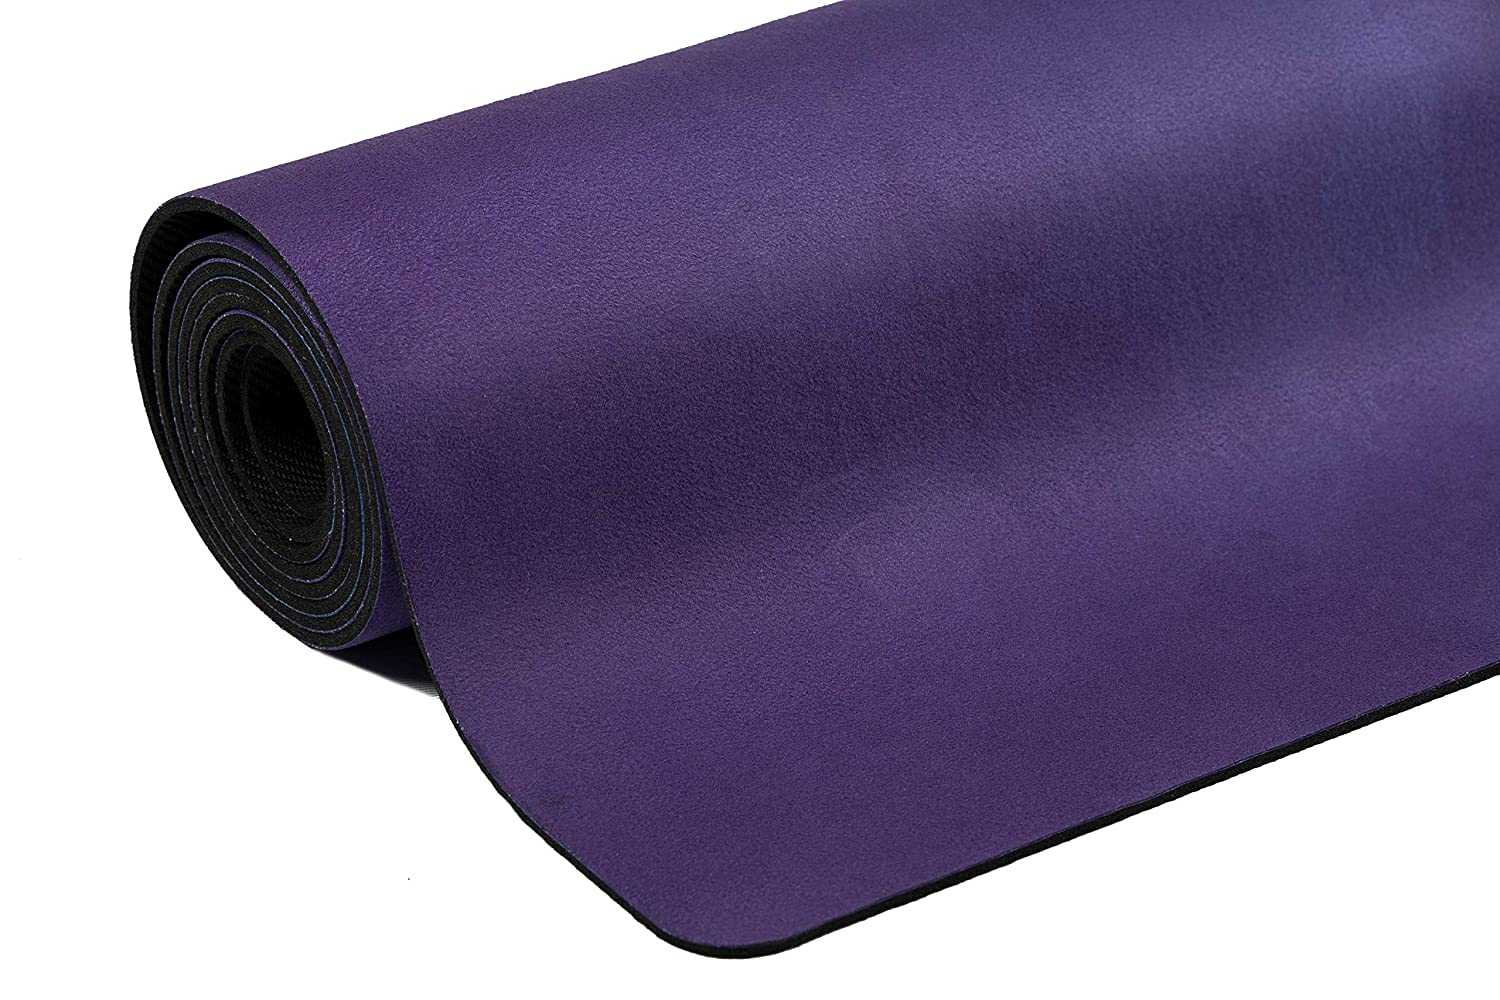 Amazon.com : Zenlife Yoga Mat - Non Slip Rubber Workout Pad ...